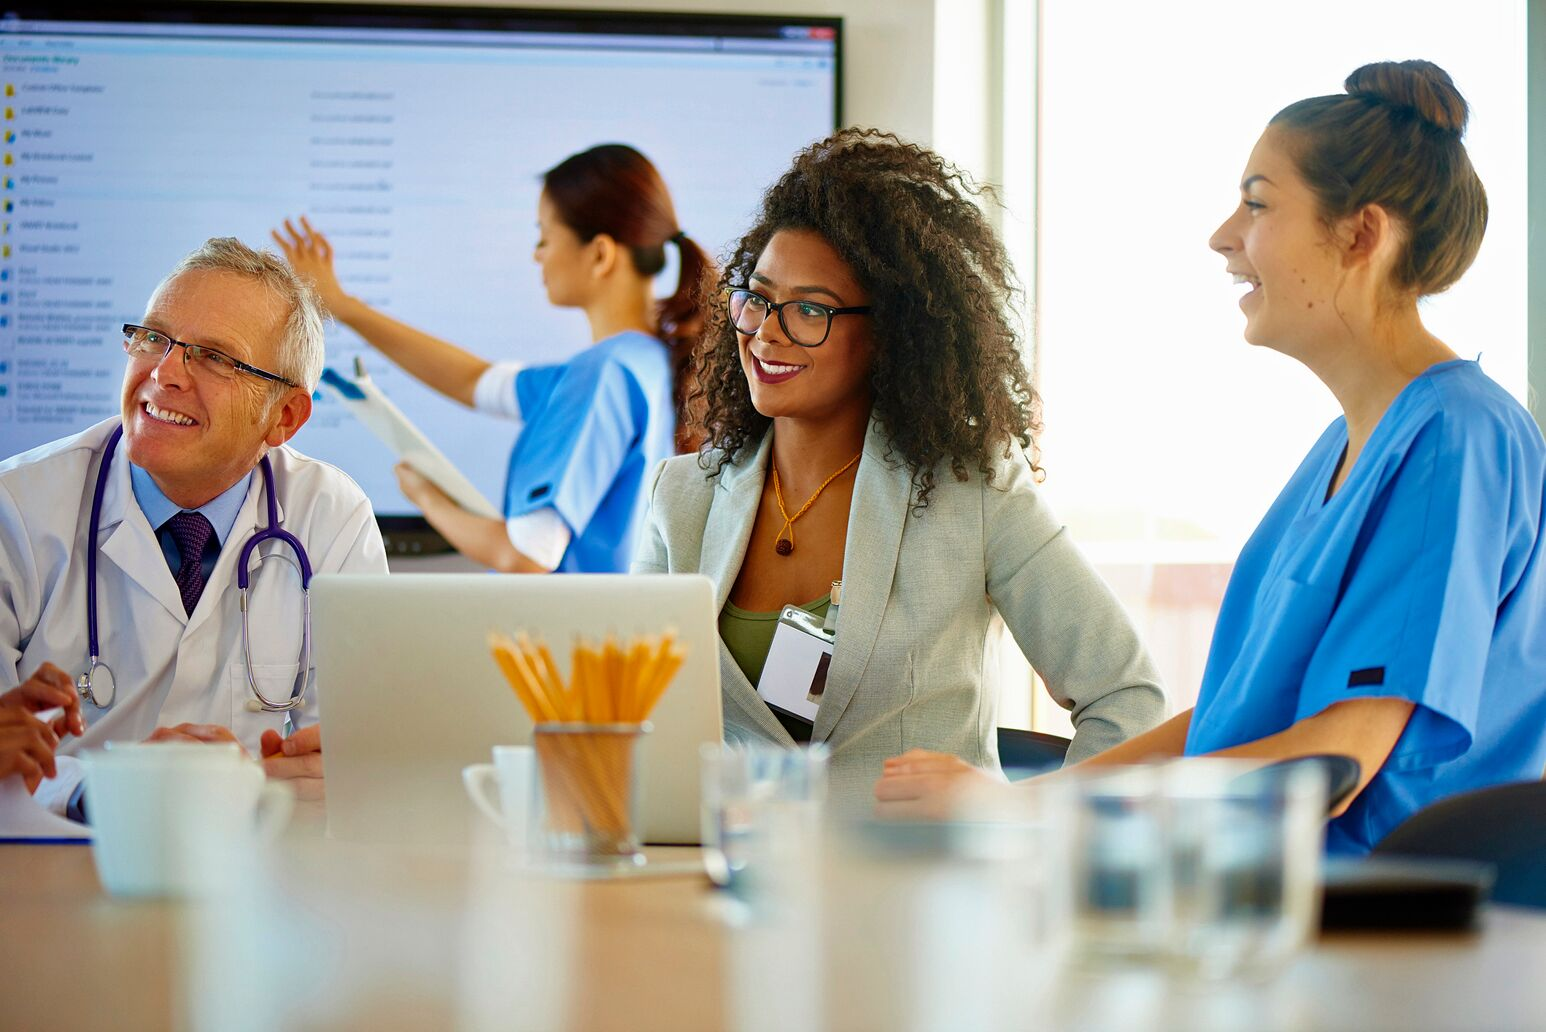 A female executive works with a team of clinicians. Michael Dowling says CEOs need to continuously invest in their employees to develop culture and familiarity with the organization.